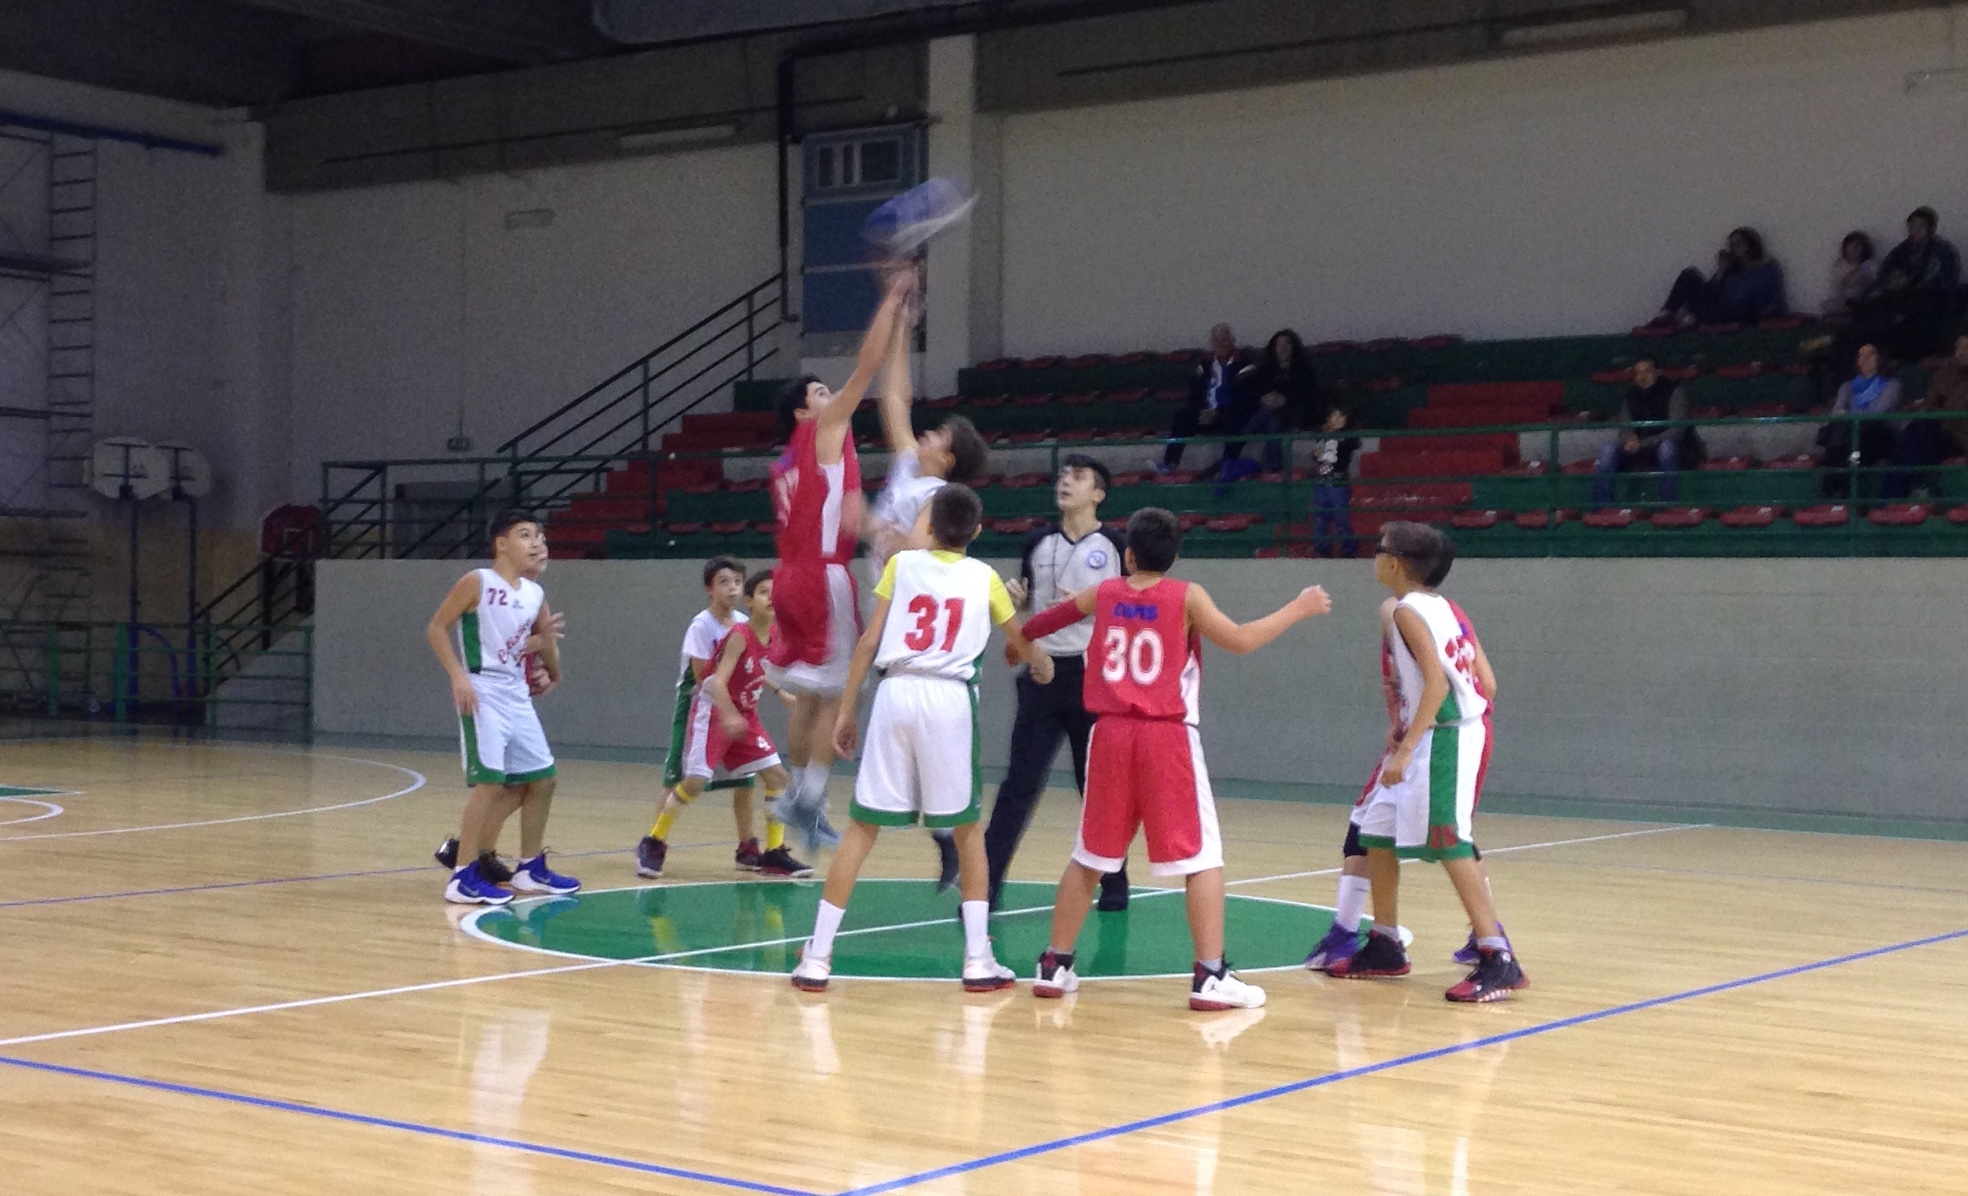 Tris Shoemakers: debutto vincente anche per l'Under 13 a Pescia